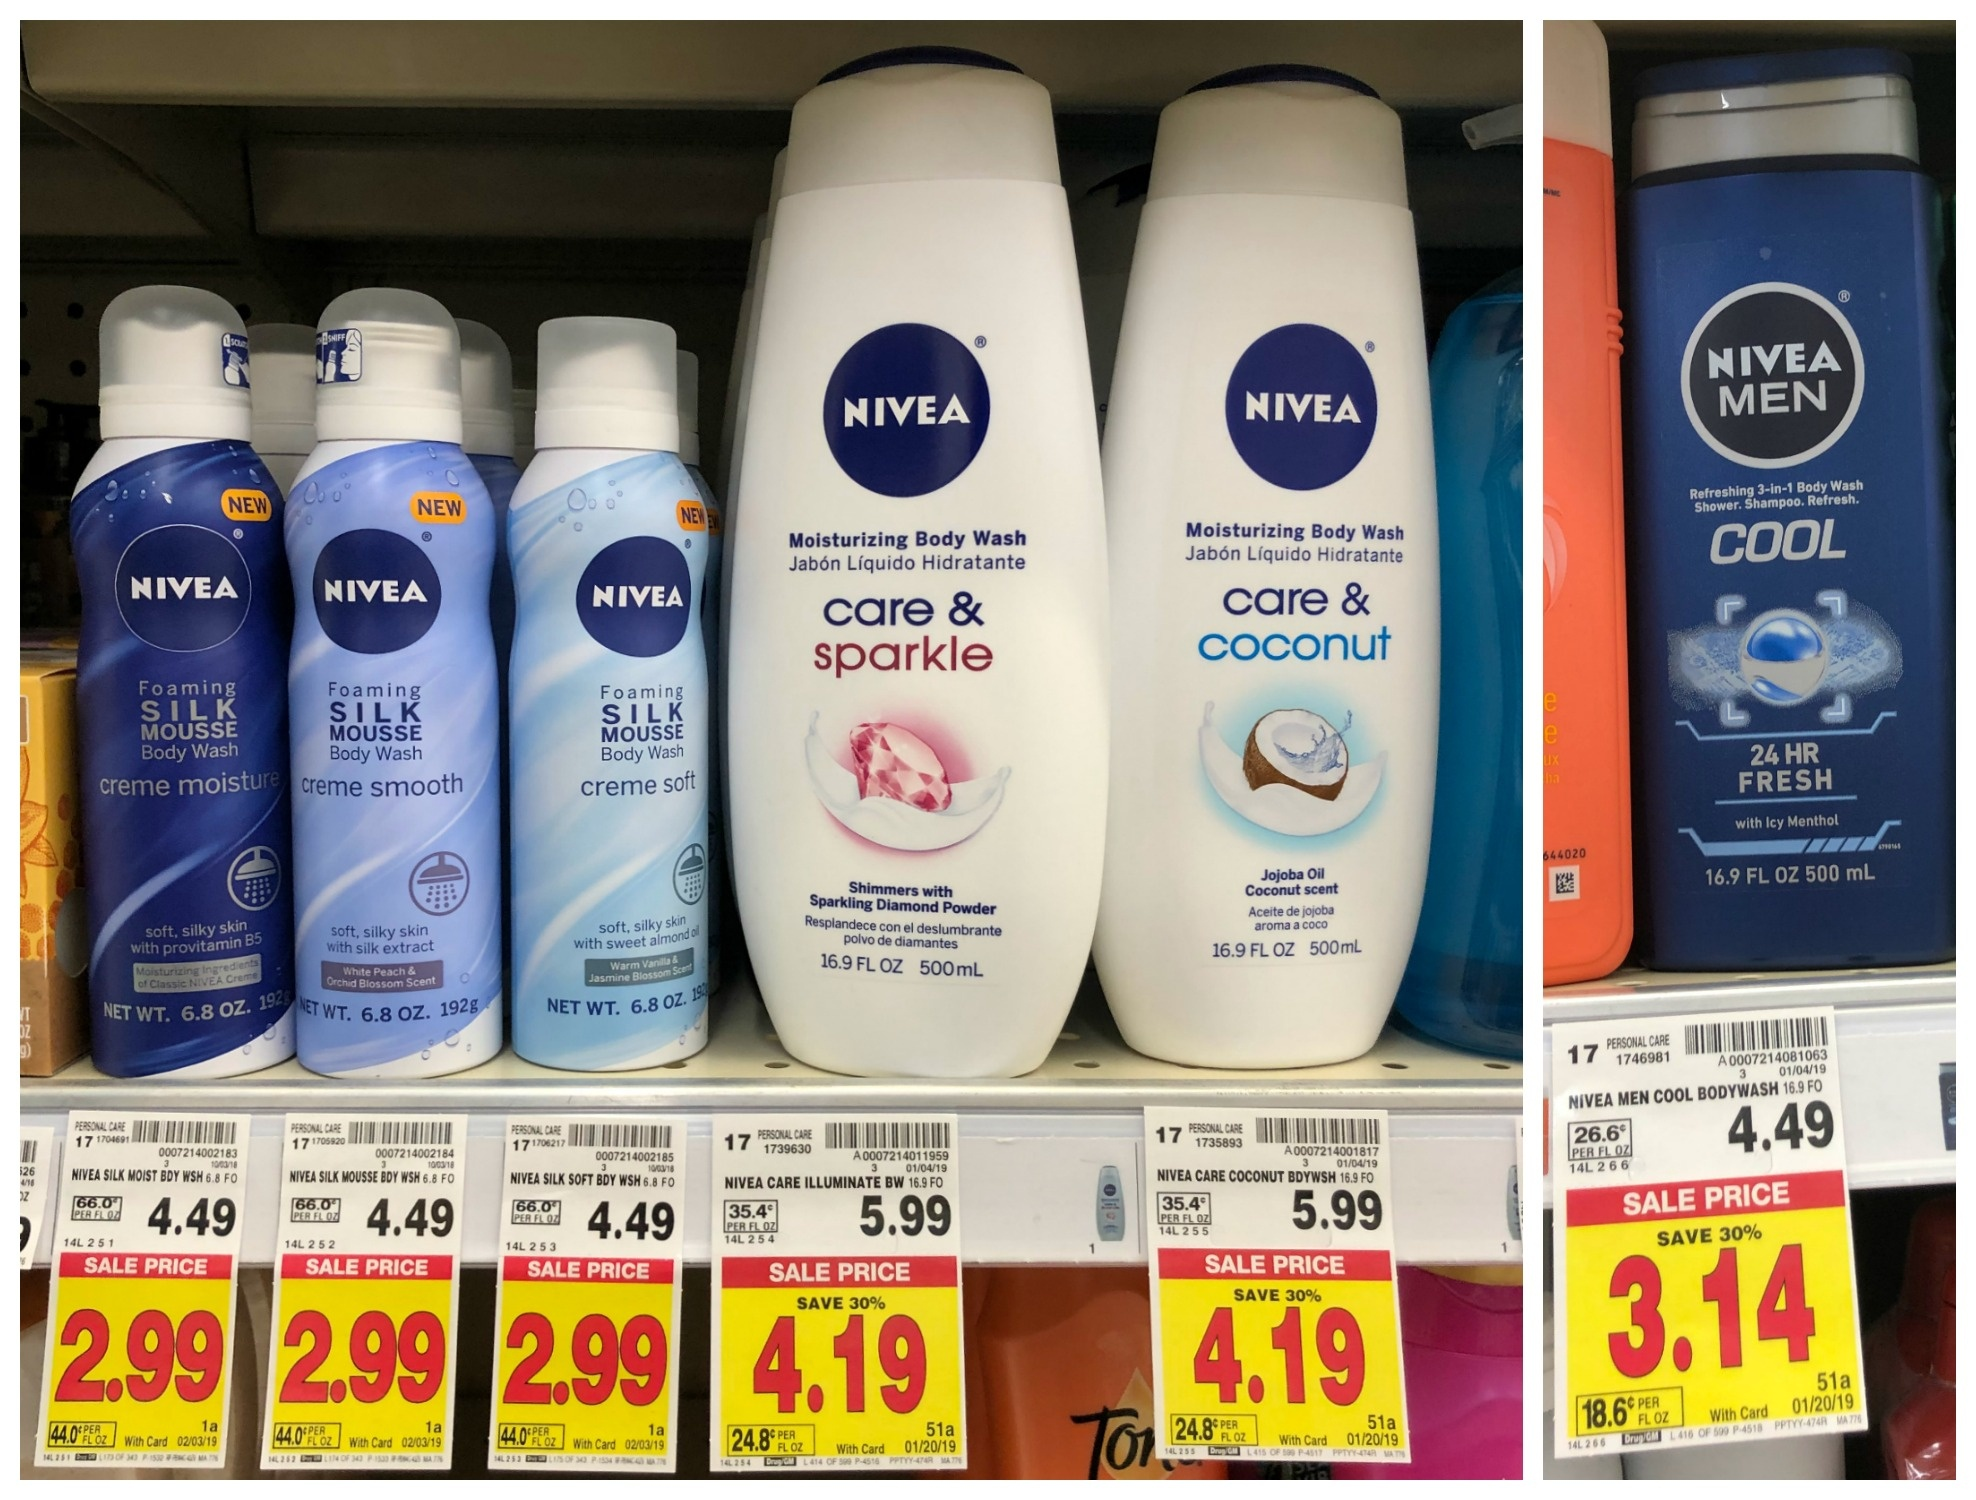 Coupon Nivea 2019 - Free Printable Nivea Coupons